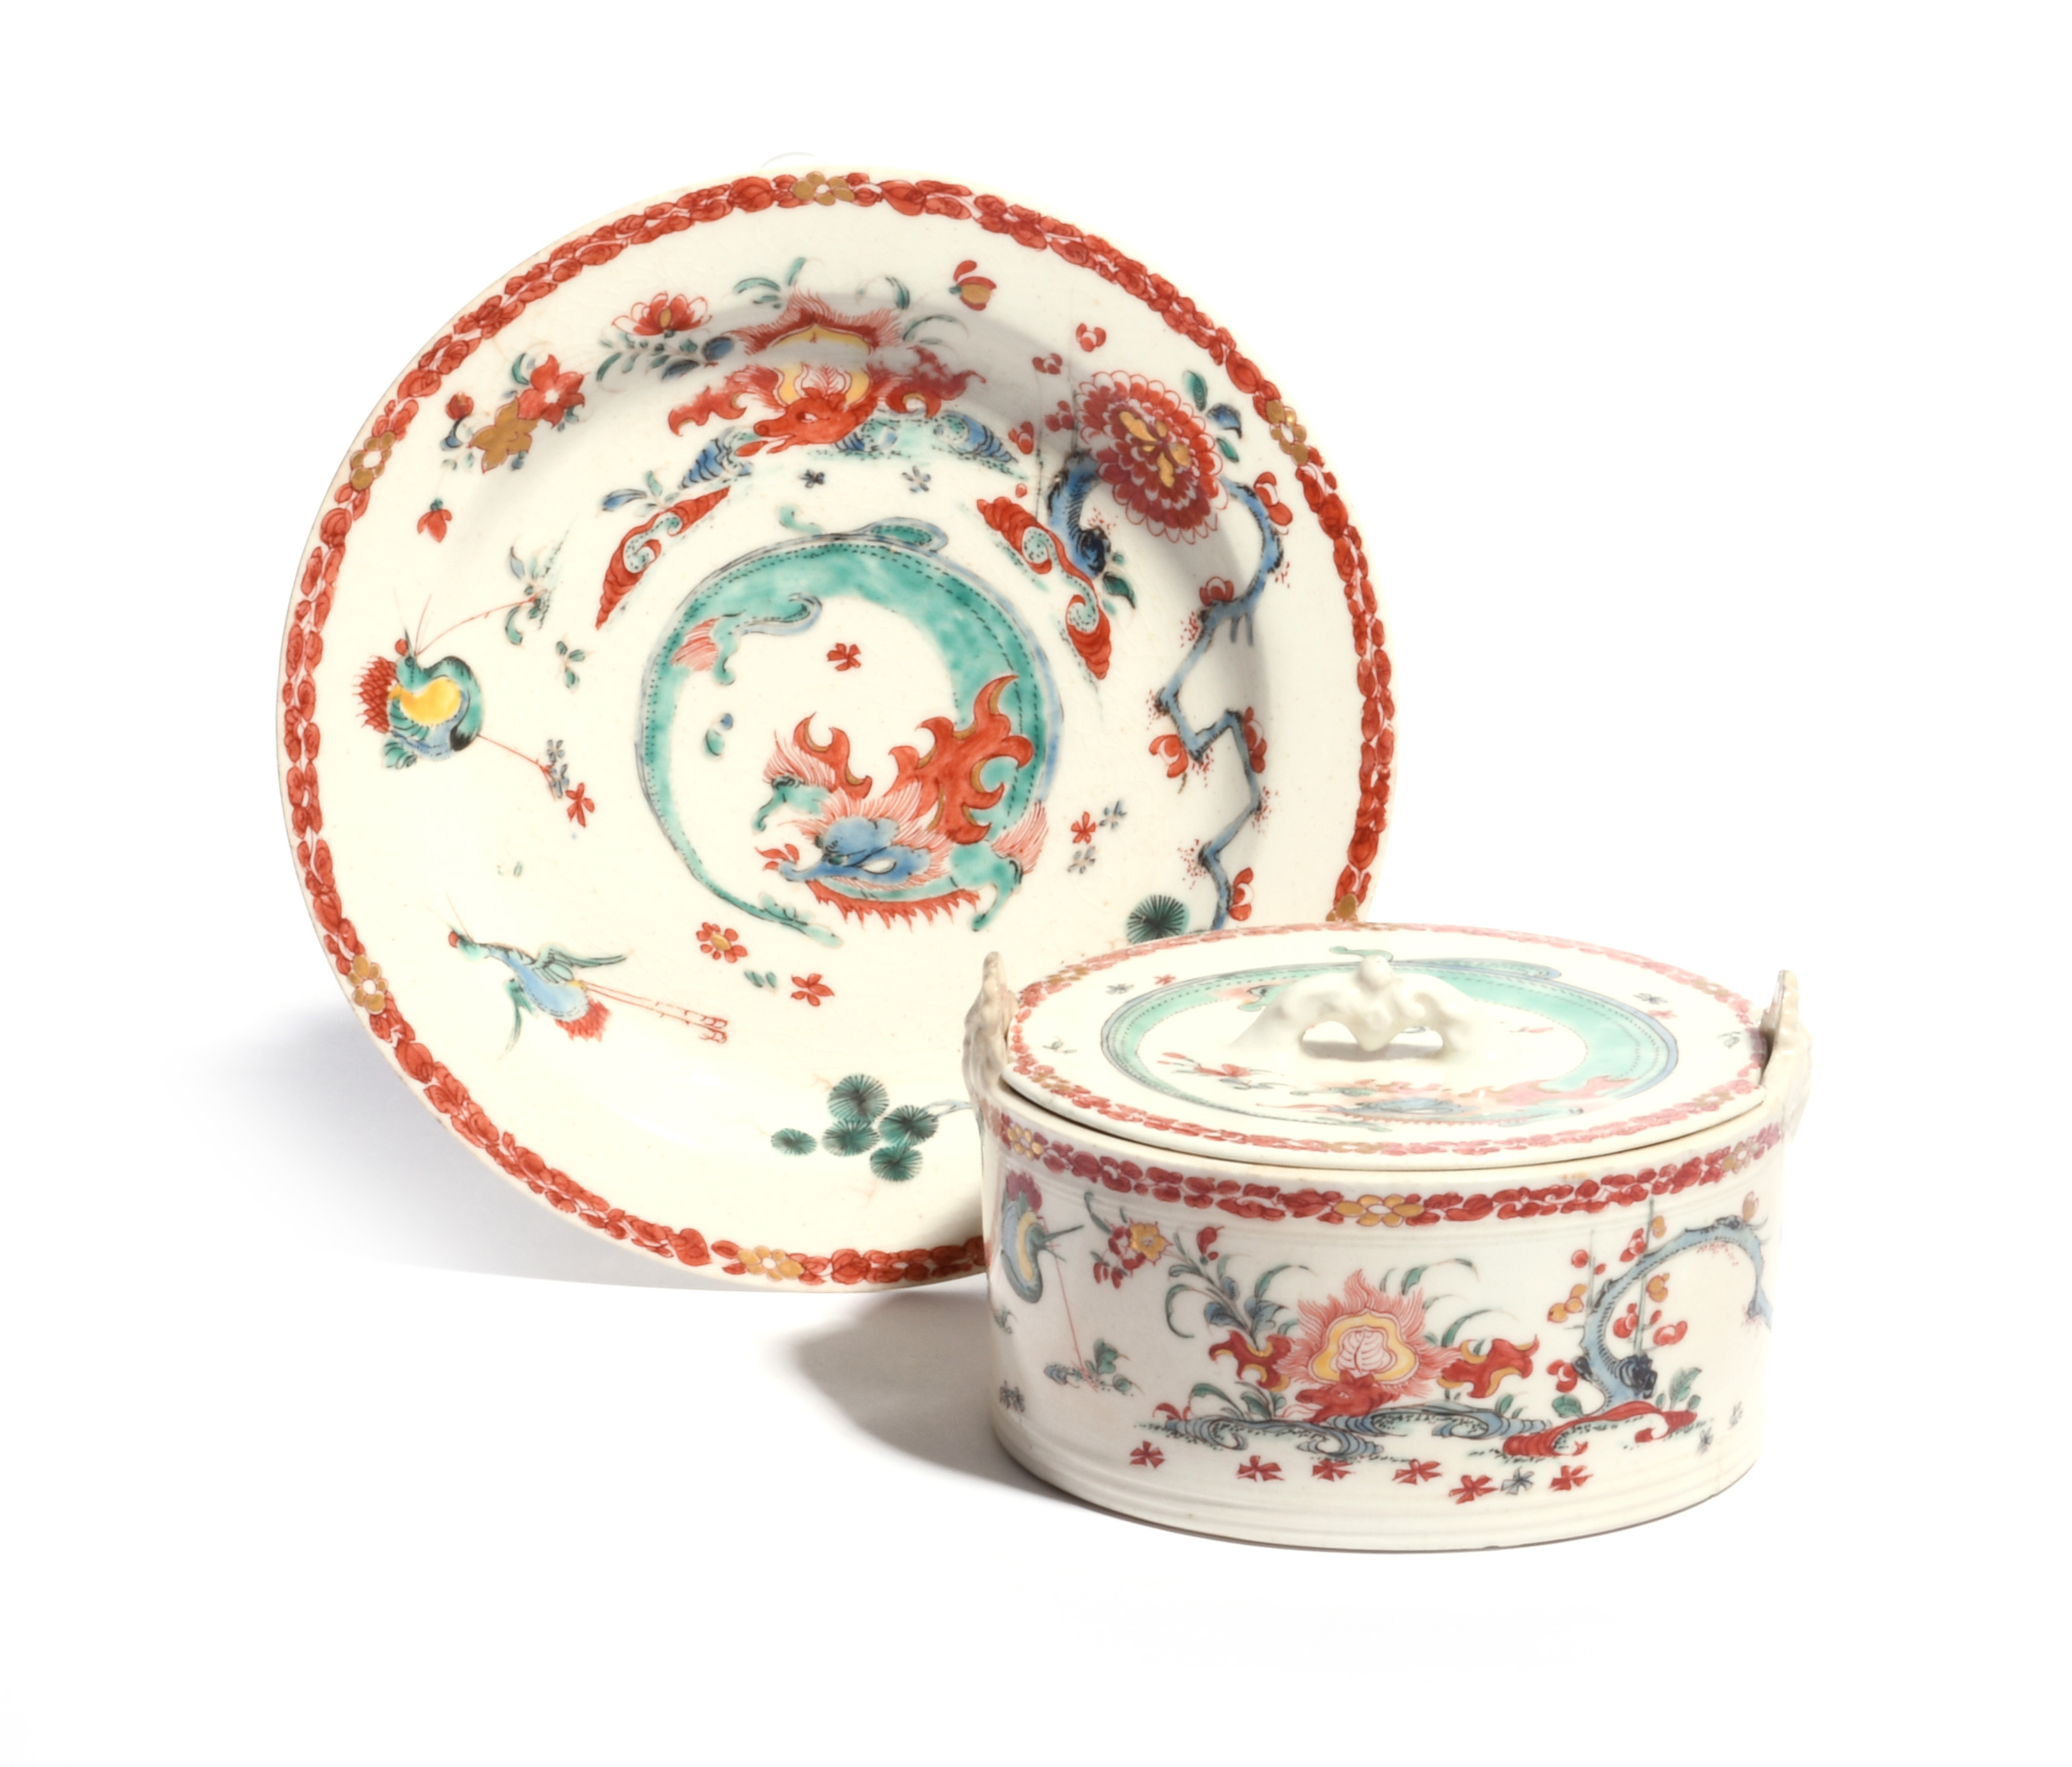 A Bow butter tub with cover and stand c.1756-60, the cylindrical body painted in Kakiemon enamels - Image 2 of 2